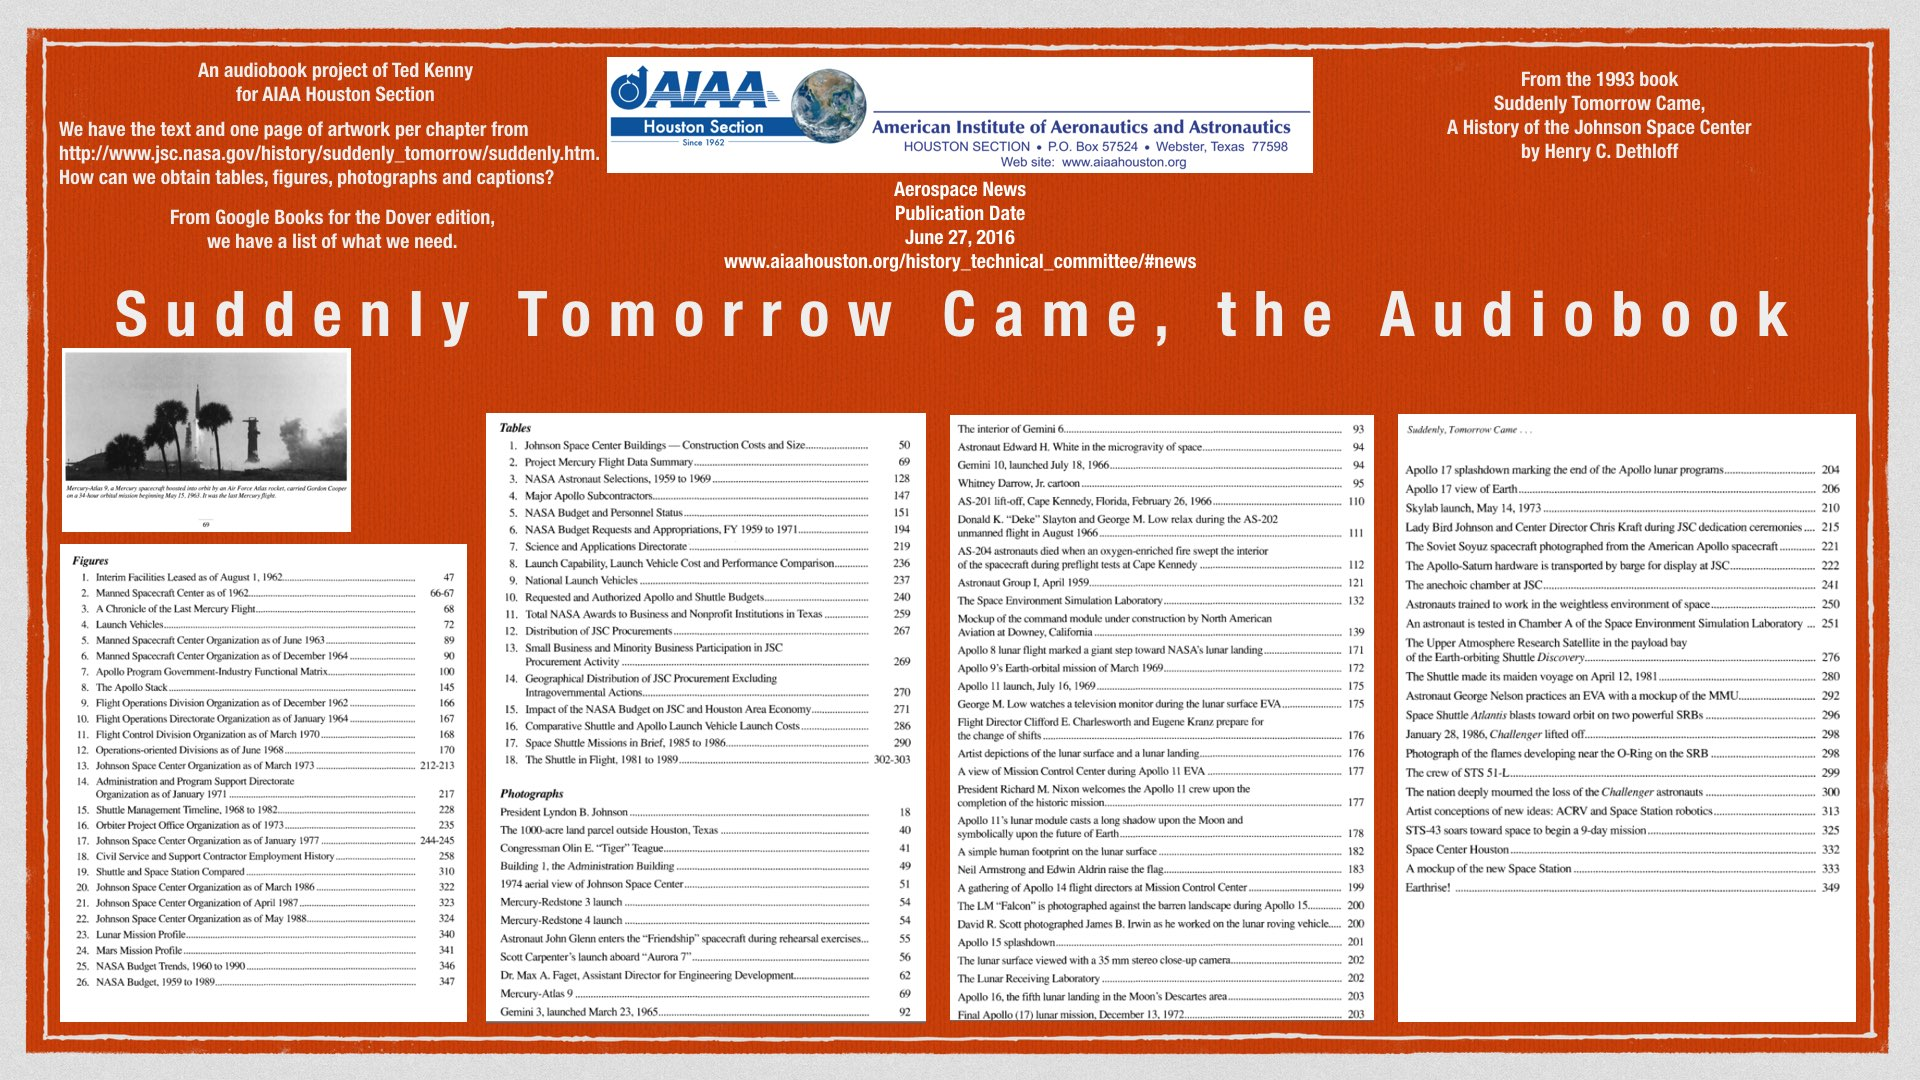 Above: Suddenly Tomorrow Came, the audiobook, a Ted Kenny project for AIAA Houston Section.